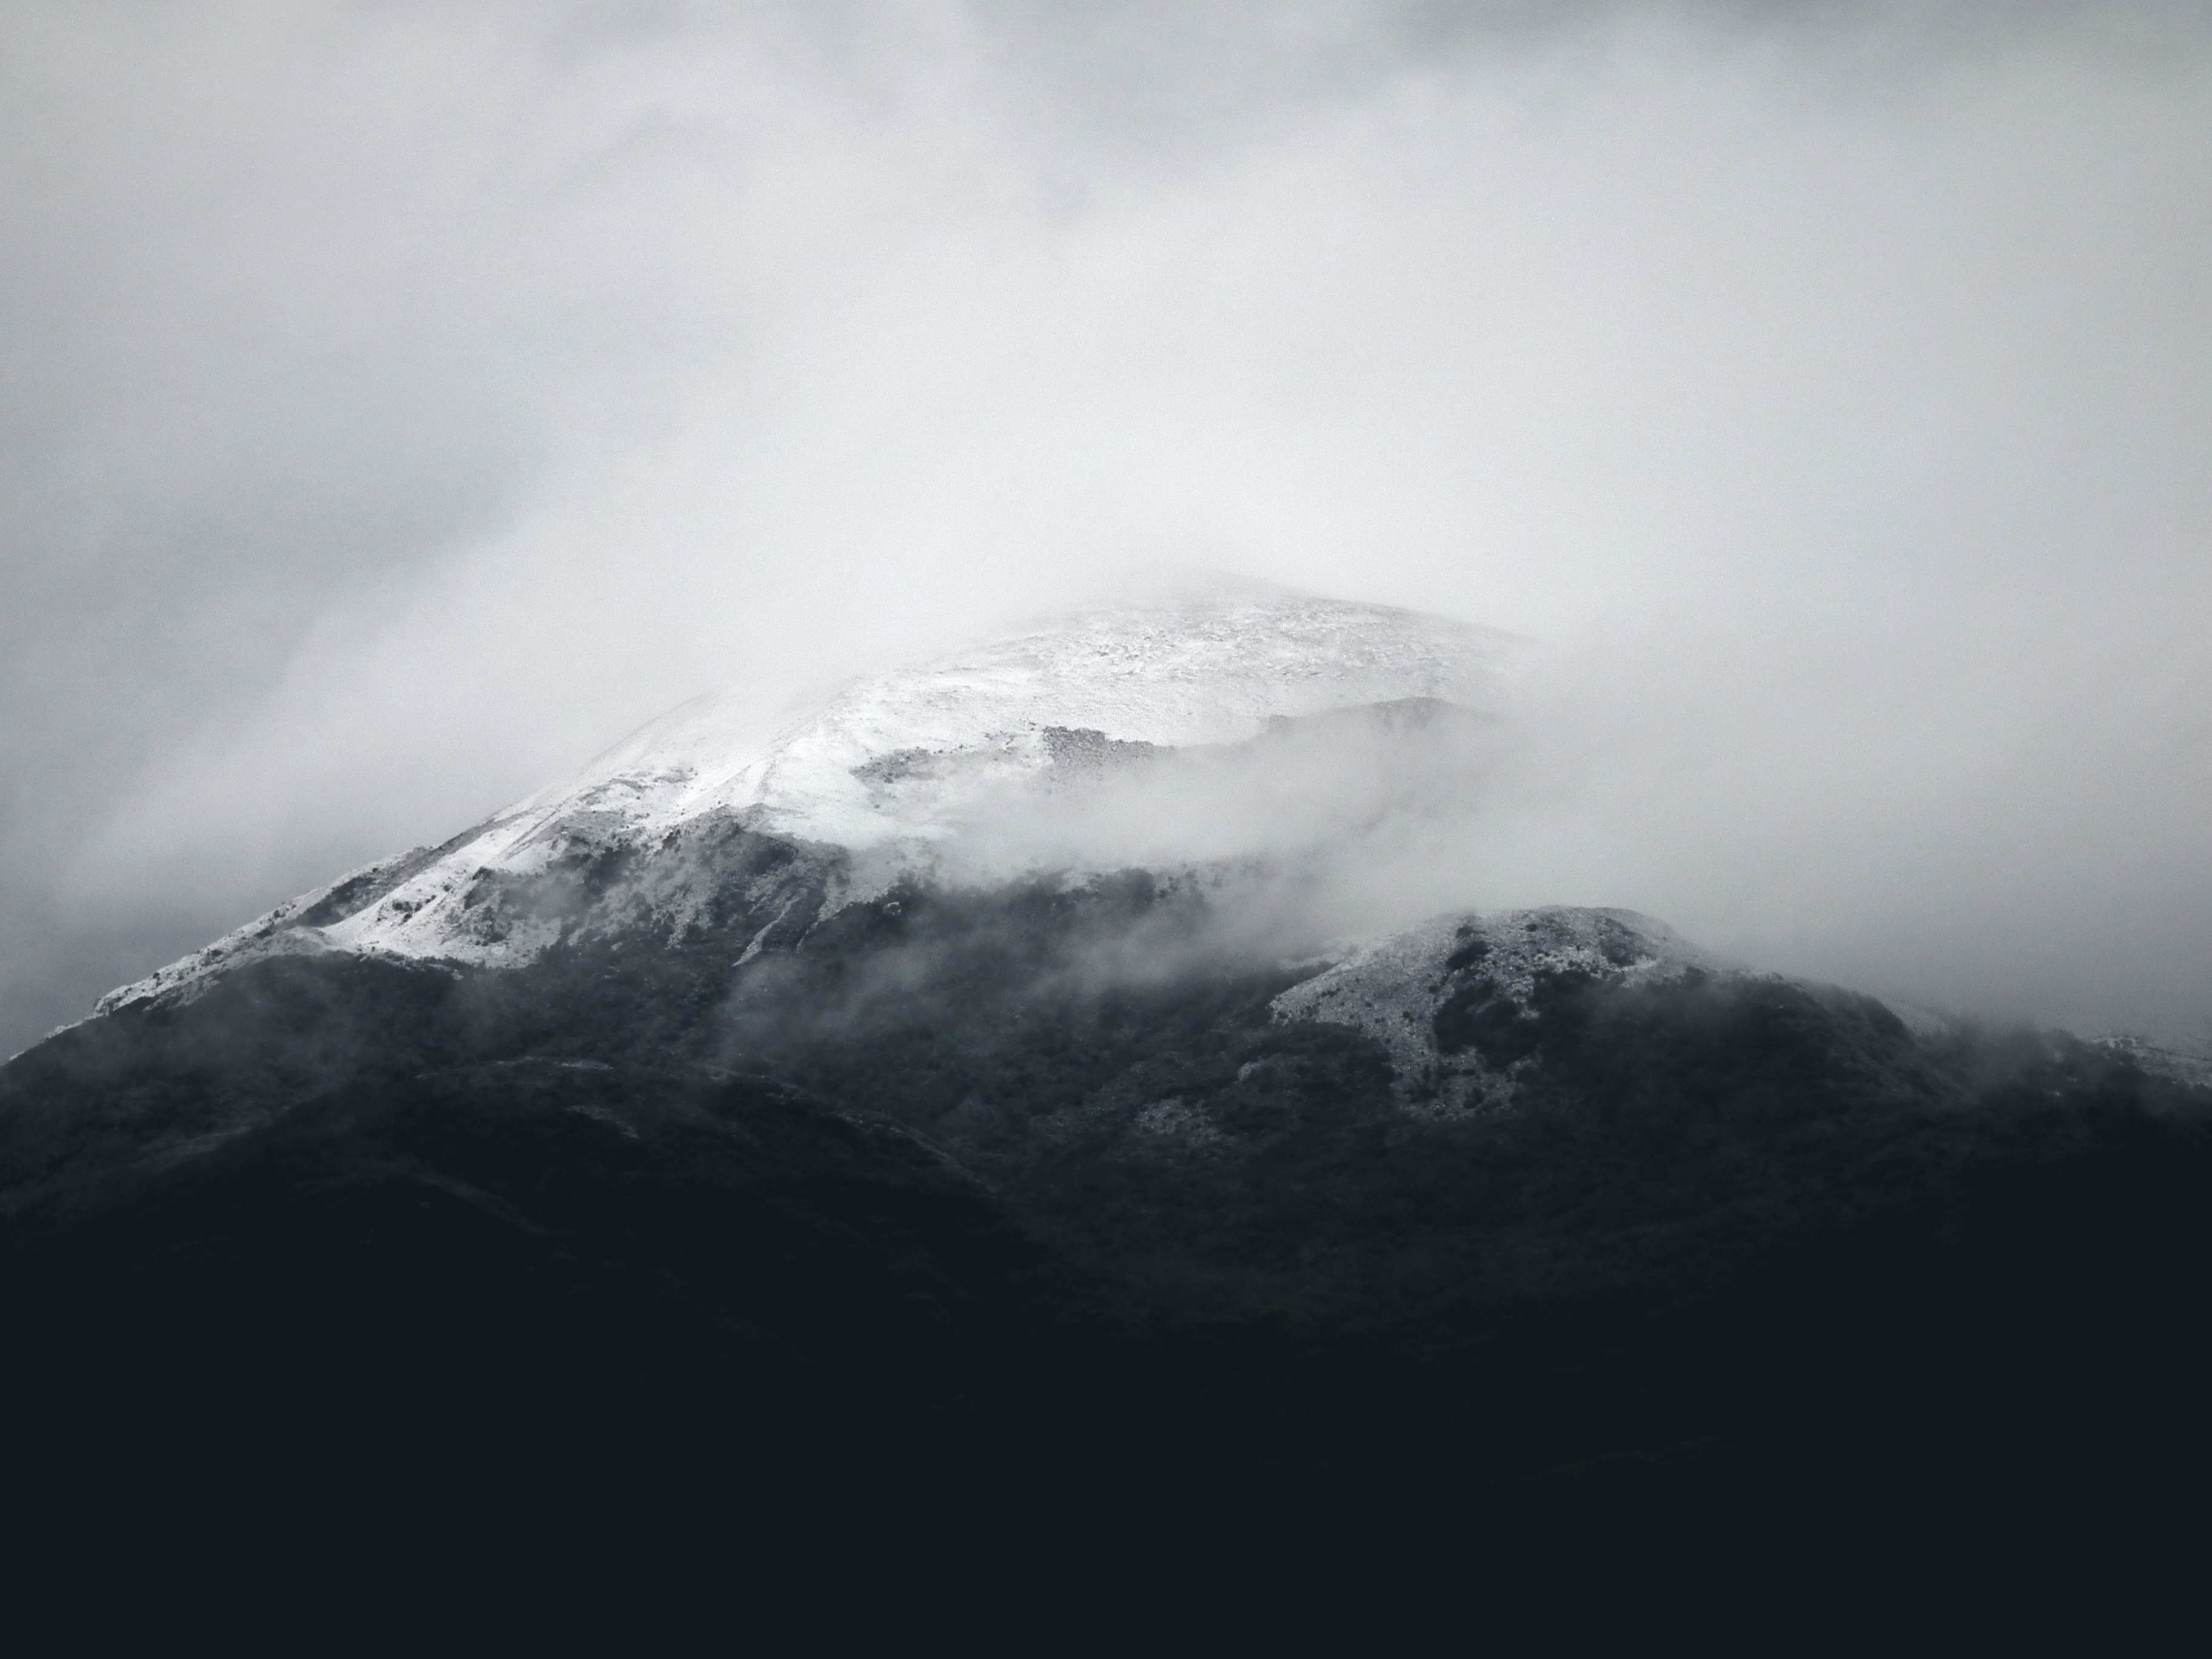 Snowy mountain peaks on a gray overcast day